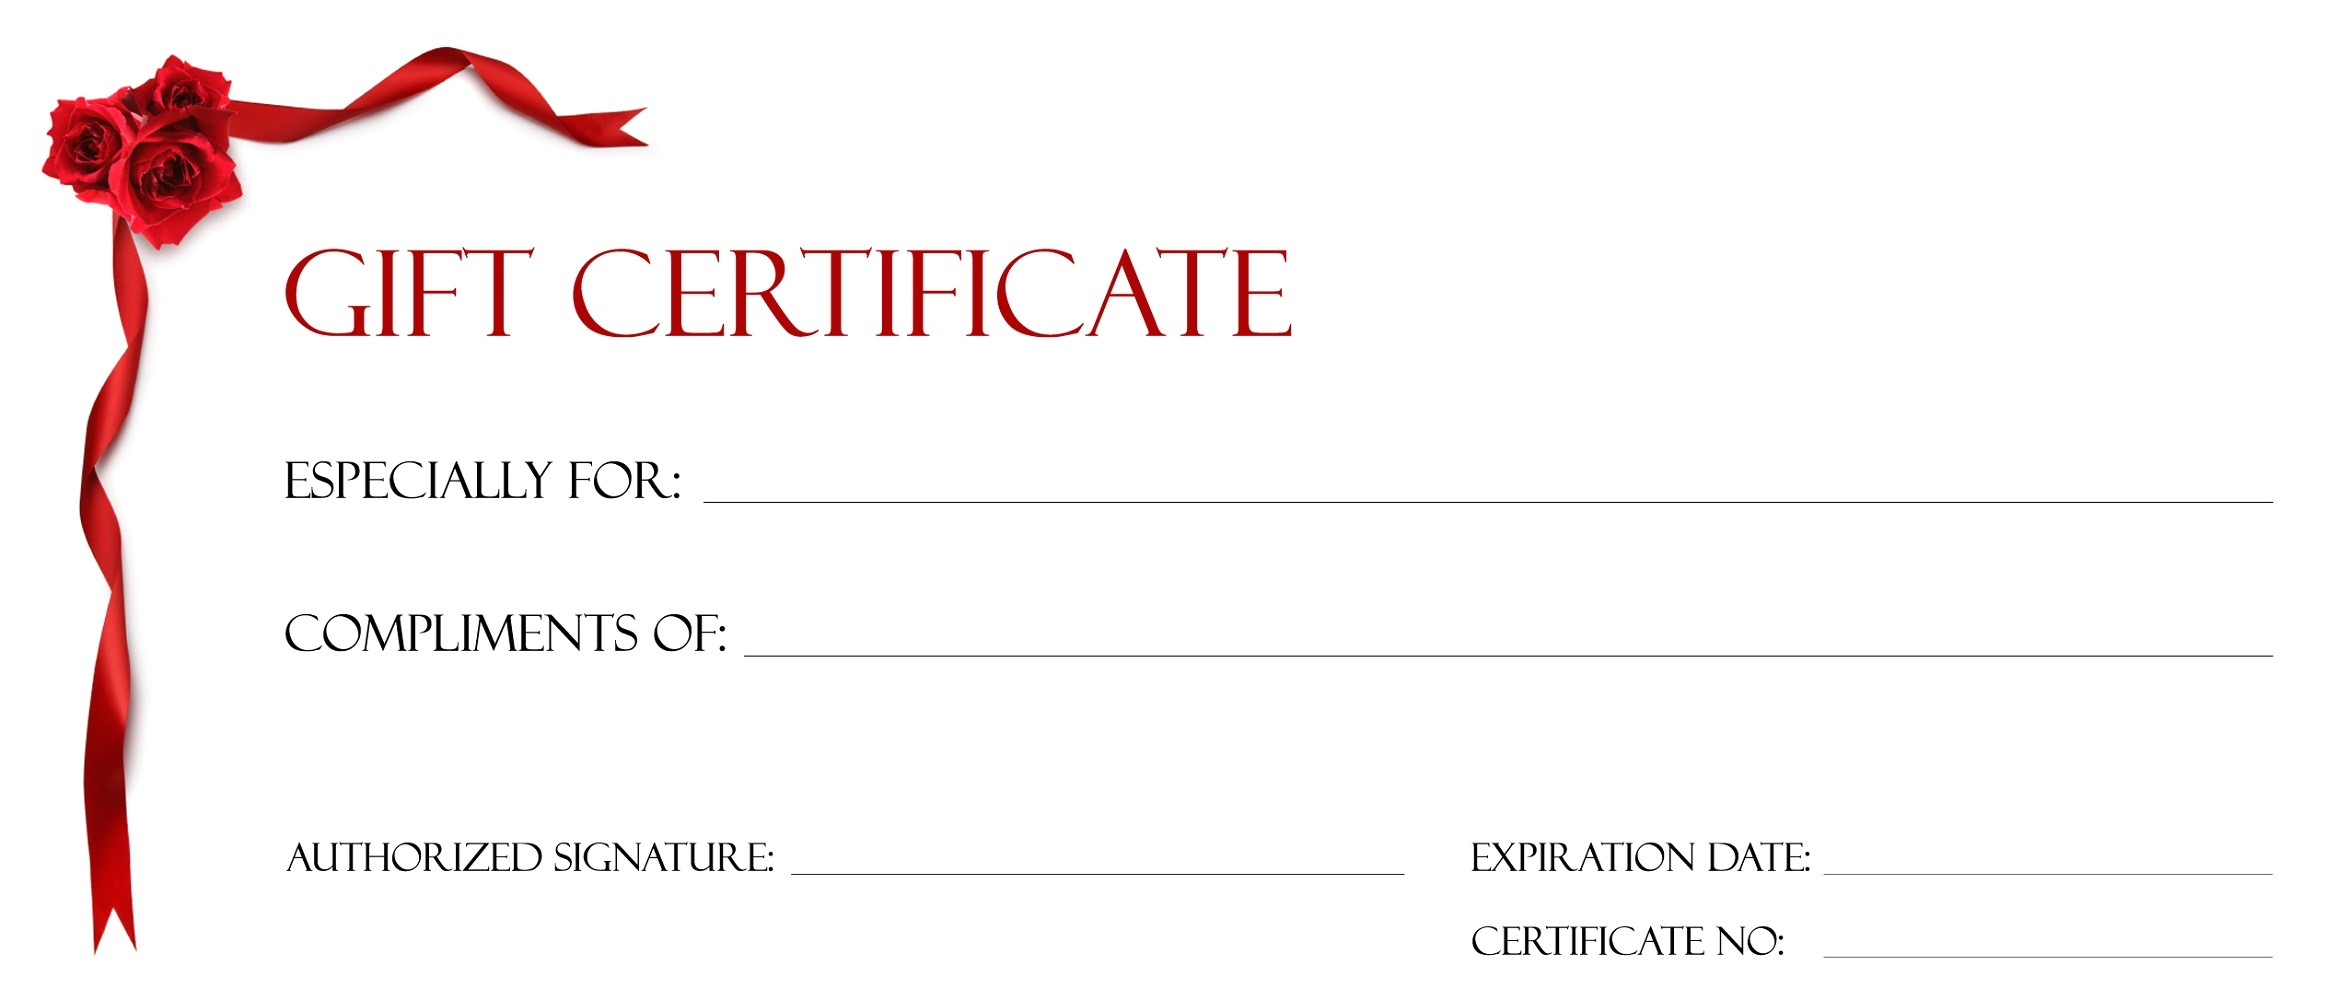 gift certificate templates to print